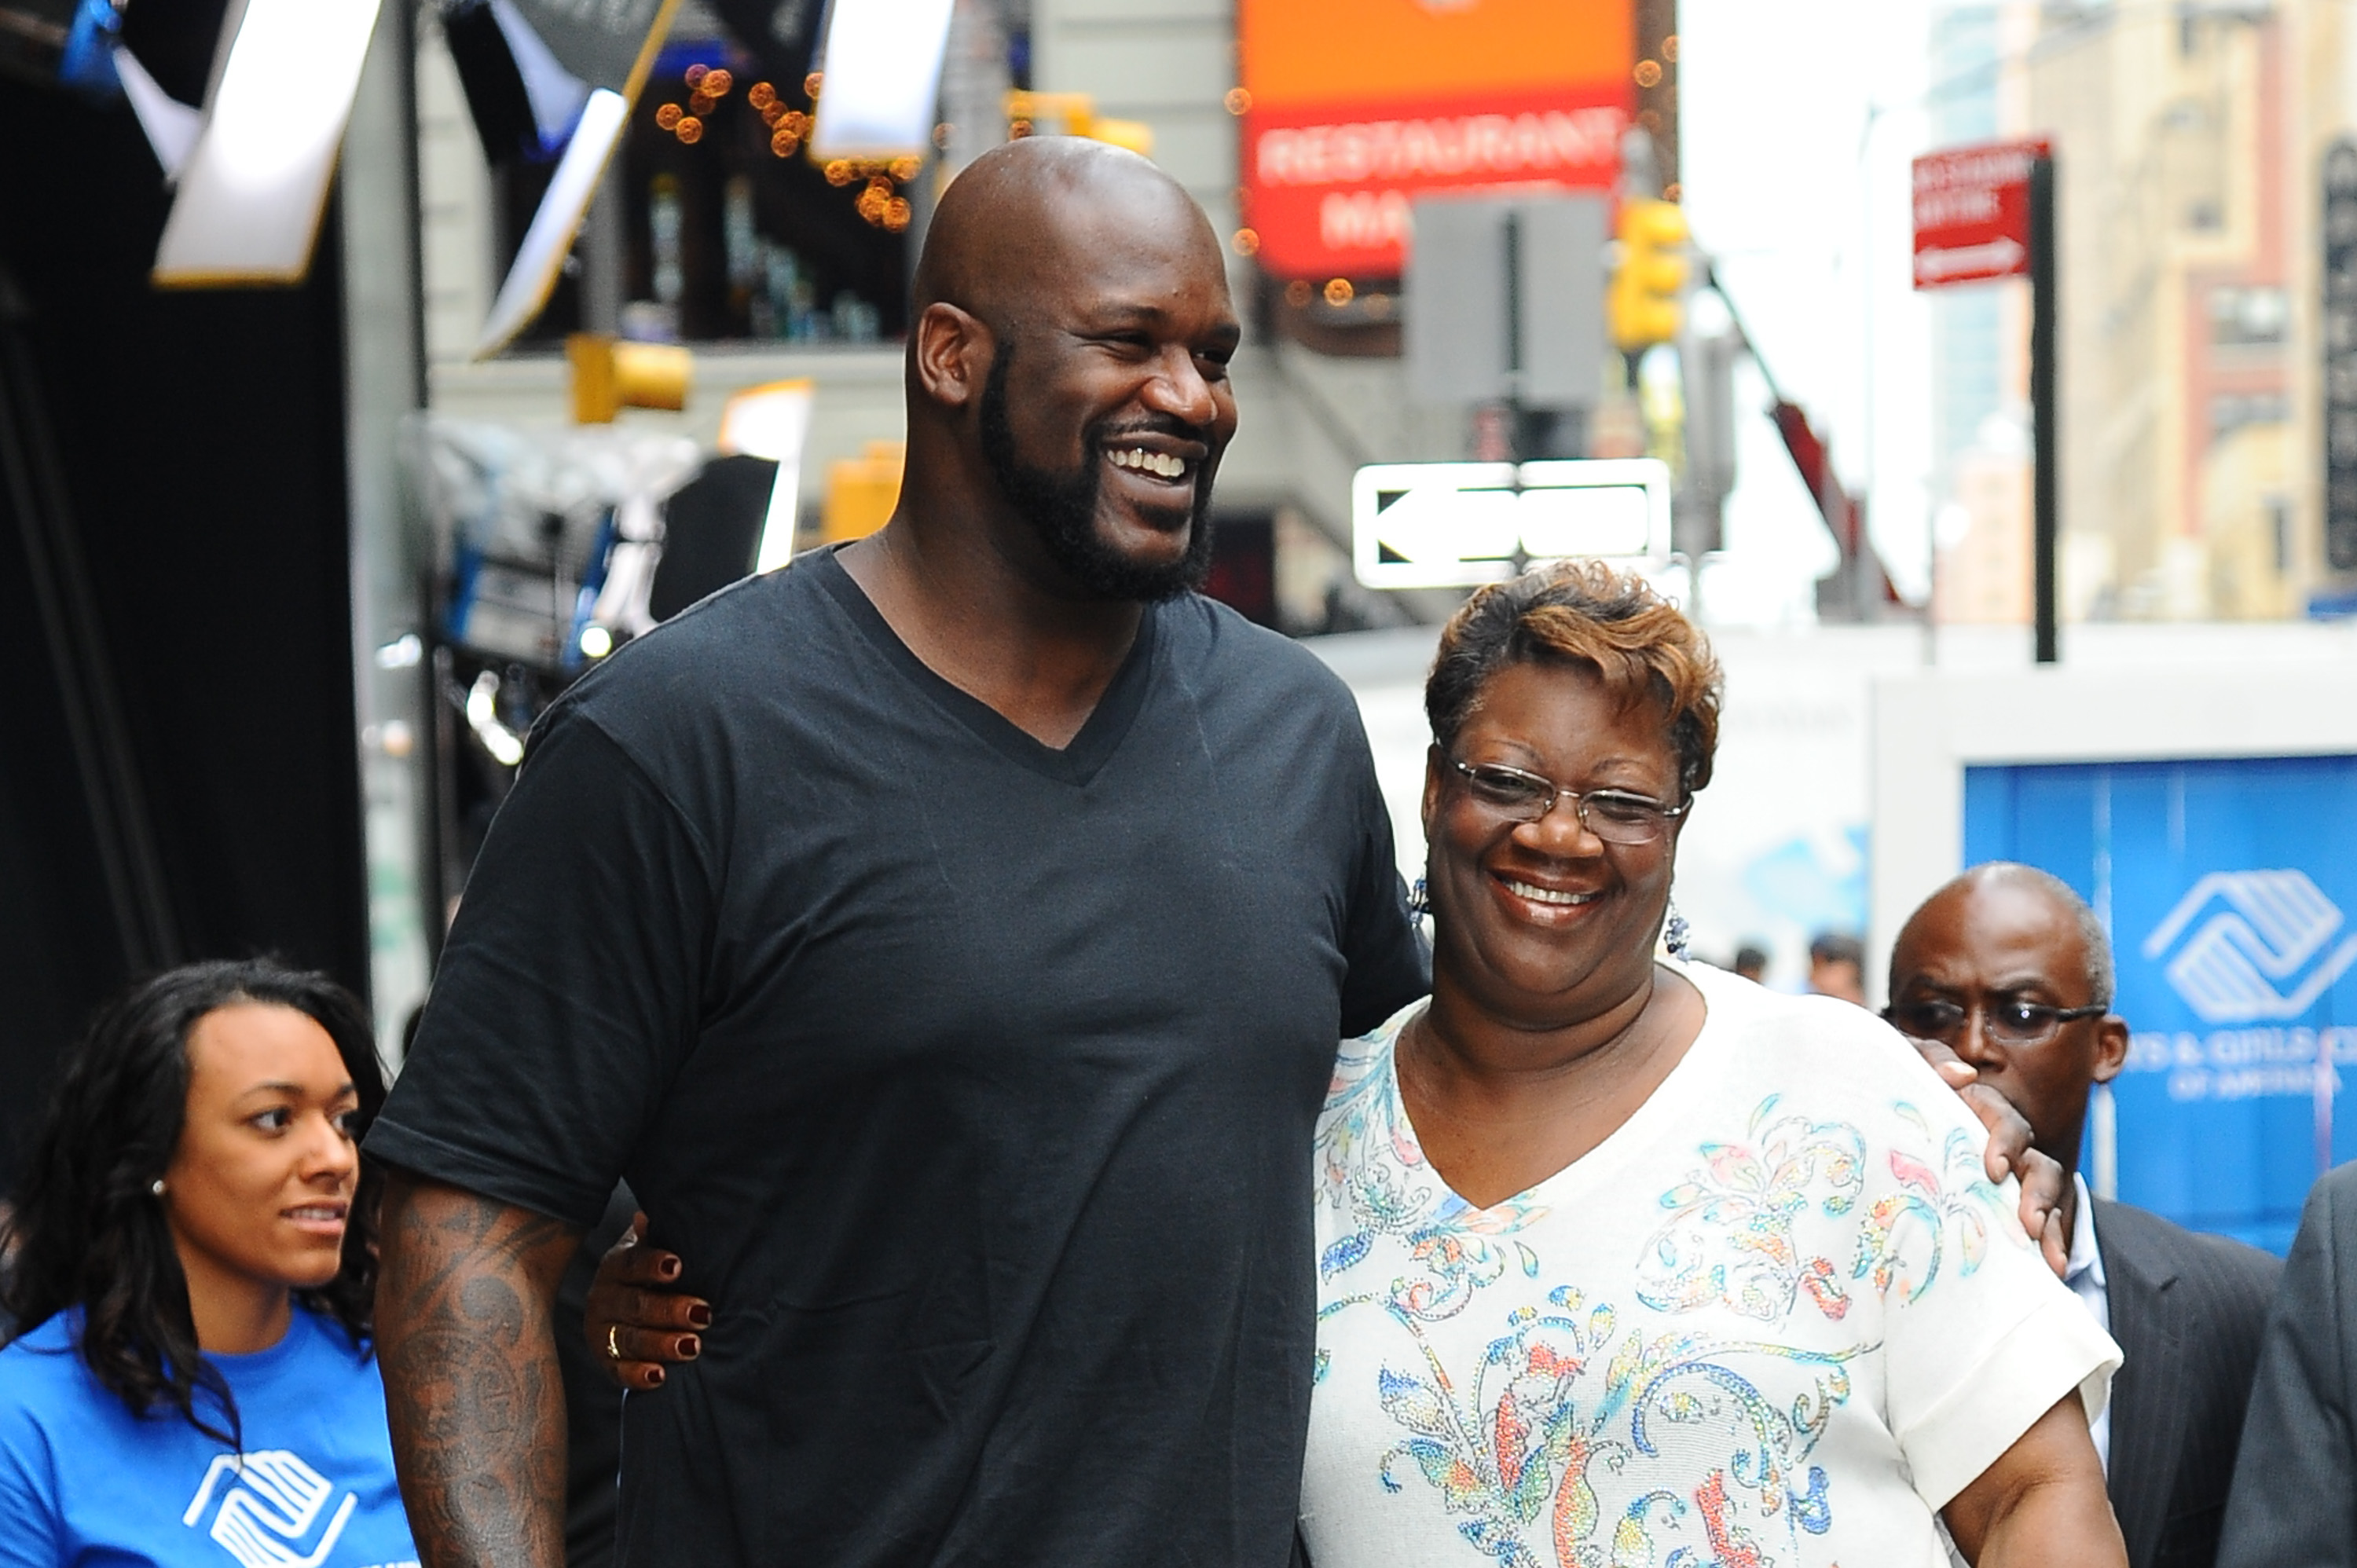 Shaquille O'Neal and his mom posing for a picture